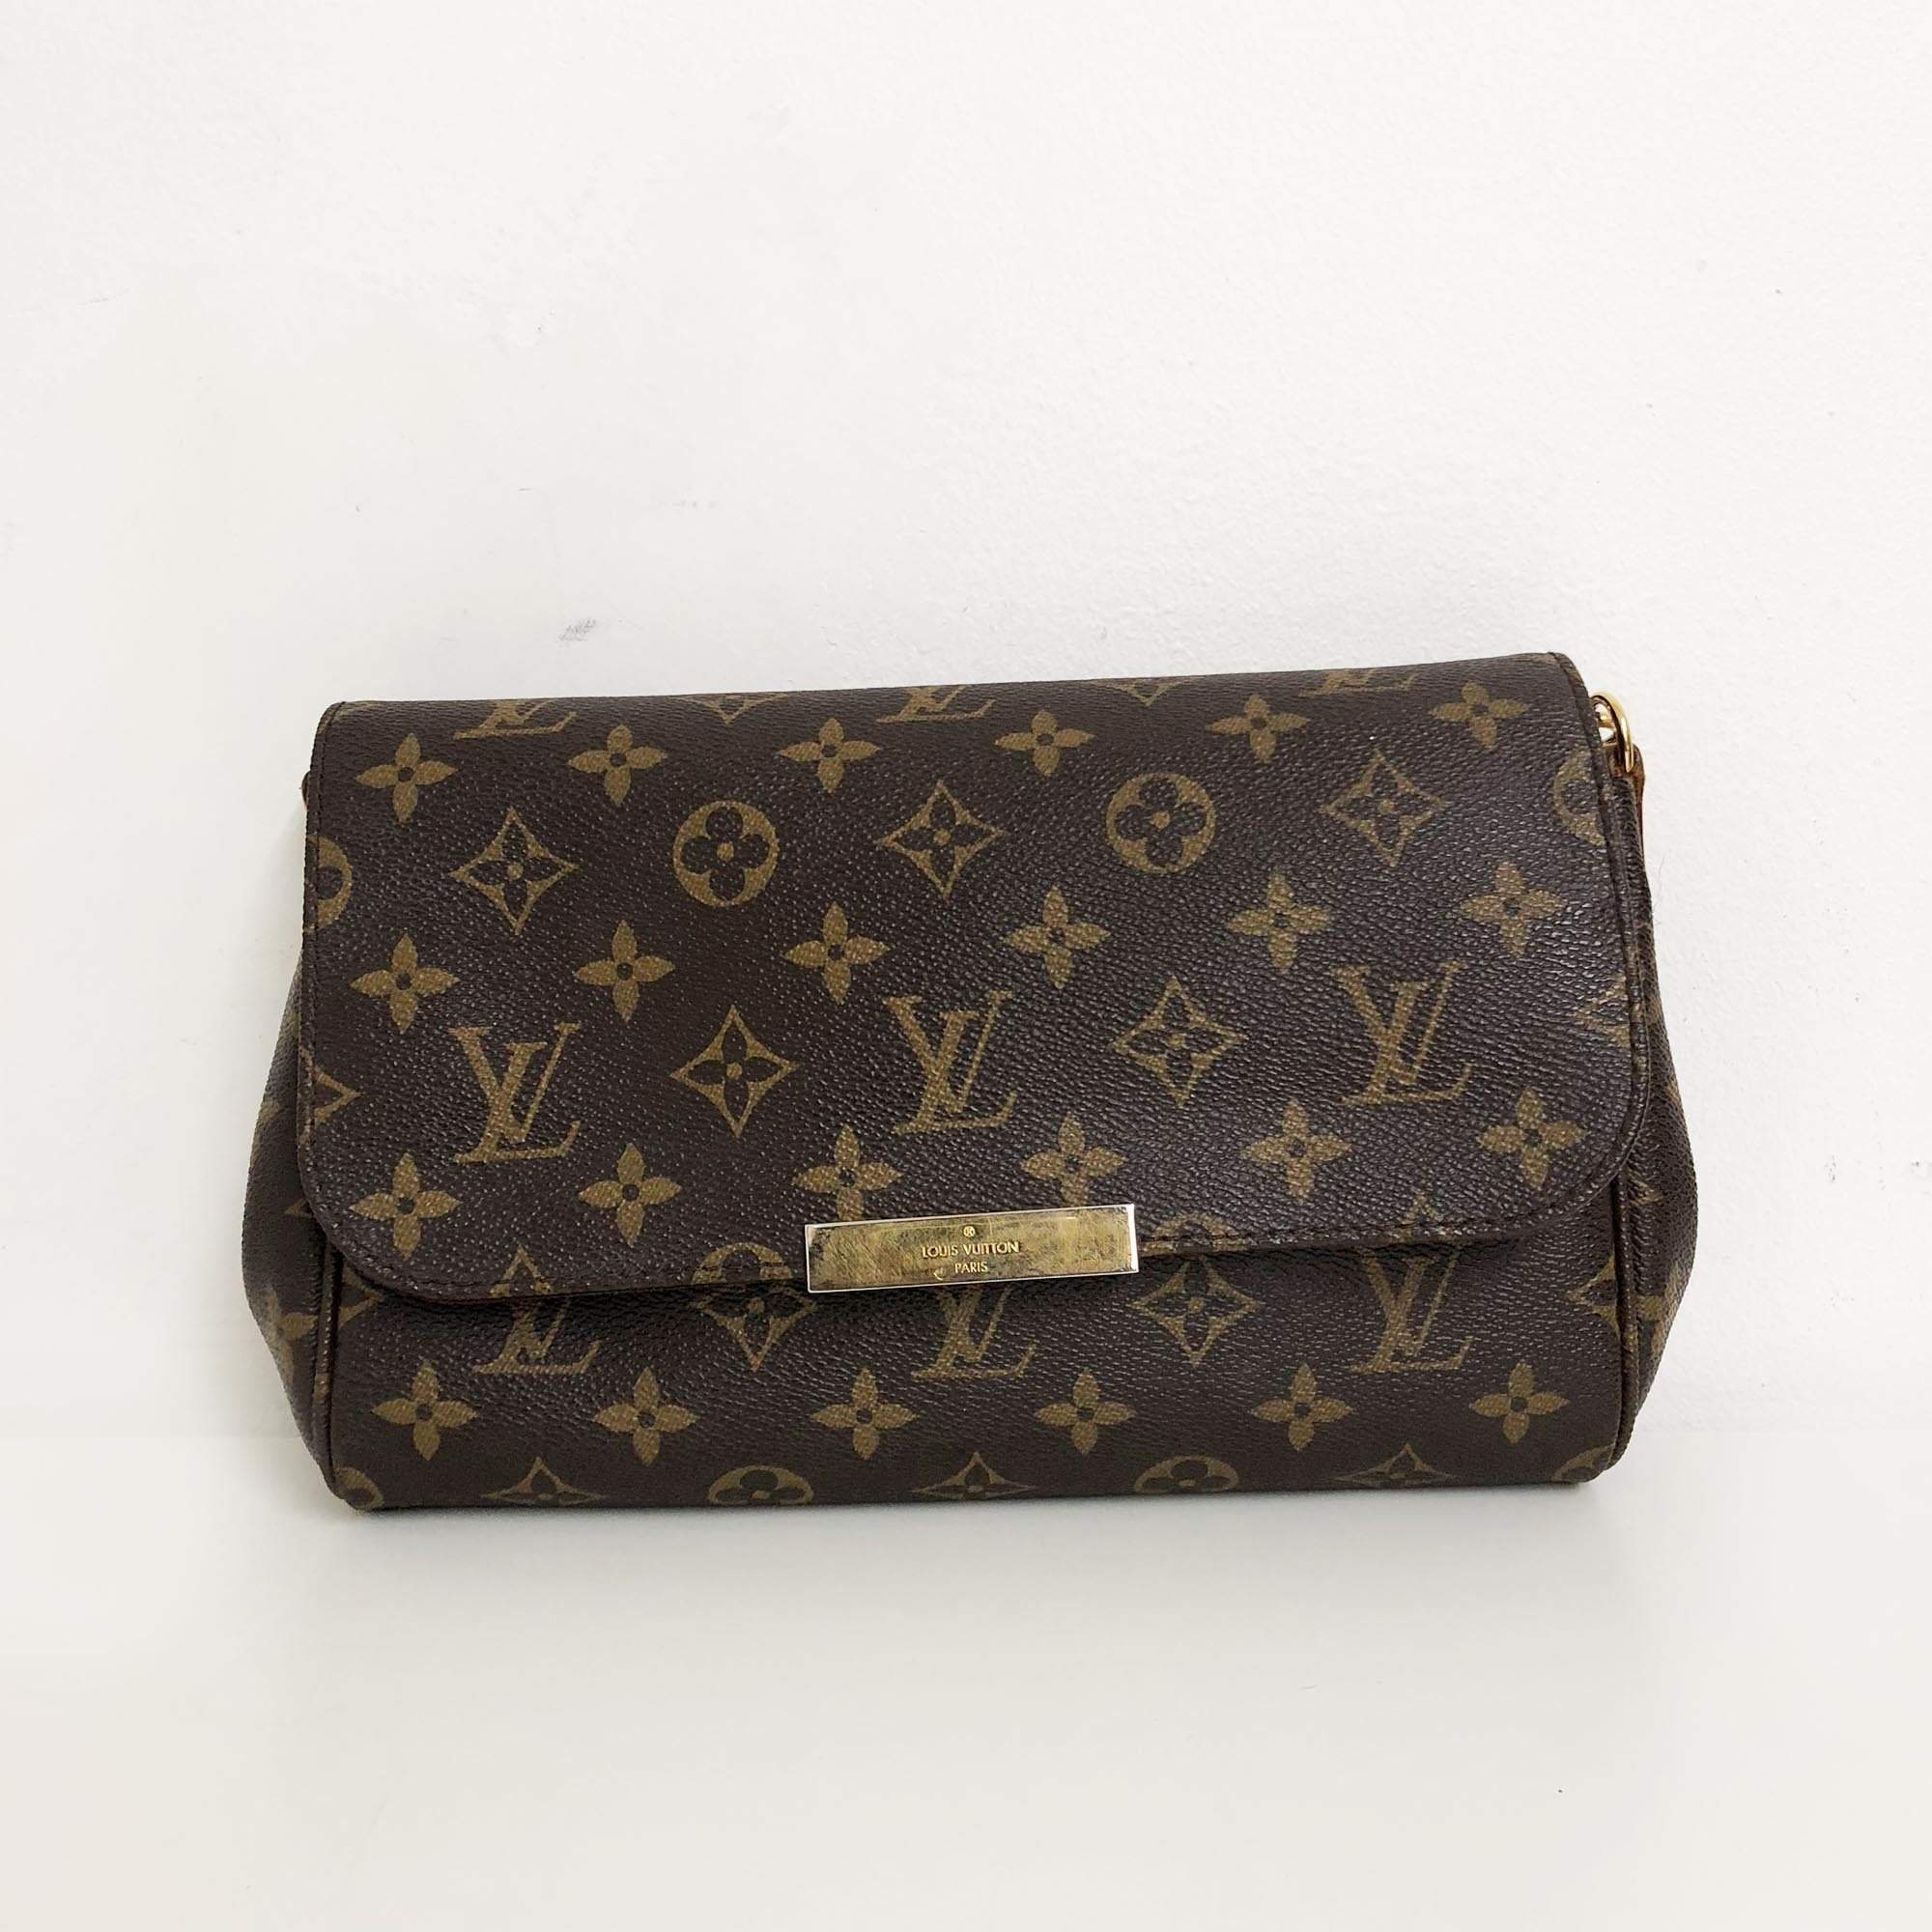 74465a95c88a Louis Vuitton Monogram Favorite MM Bag – Garderobe